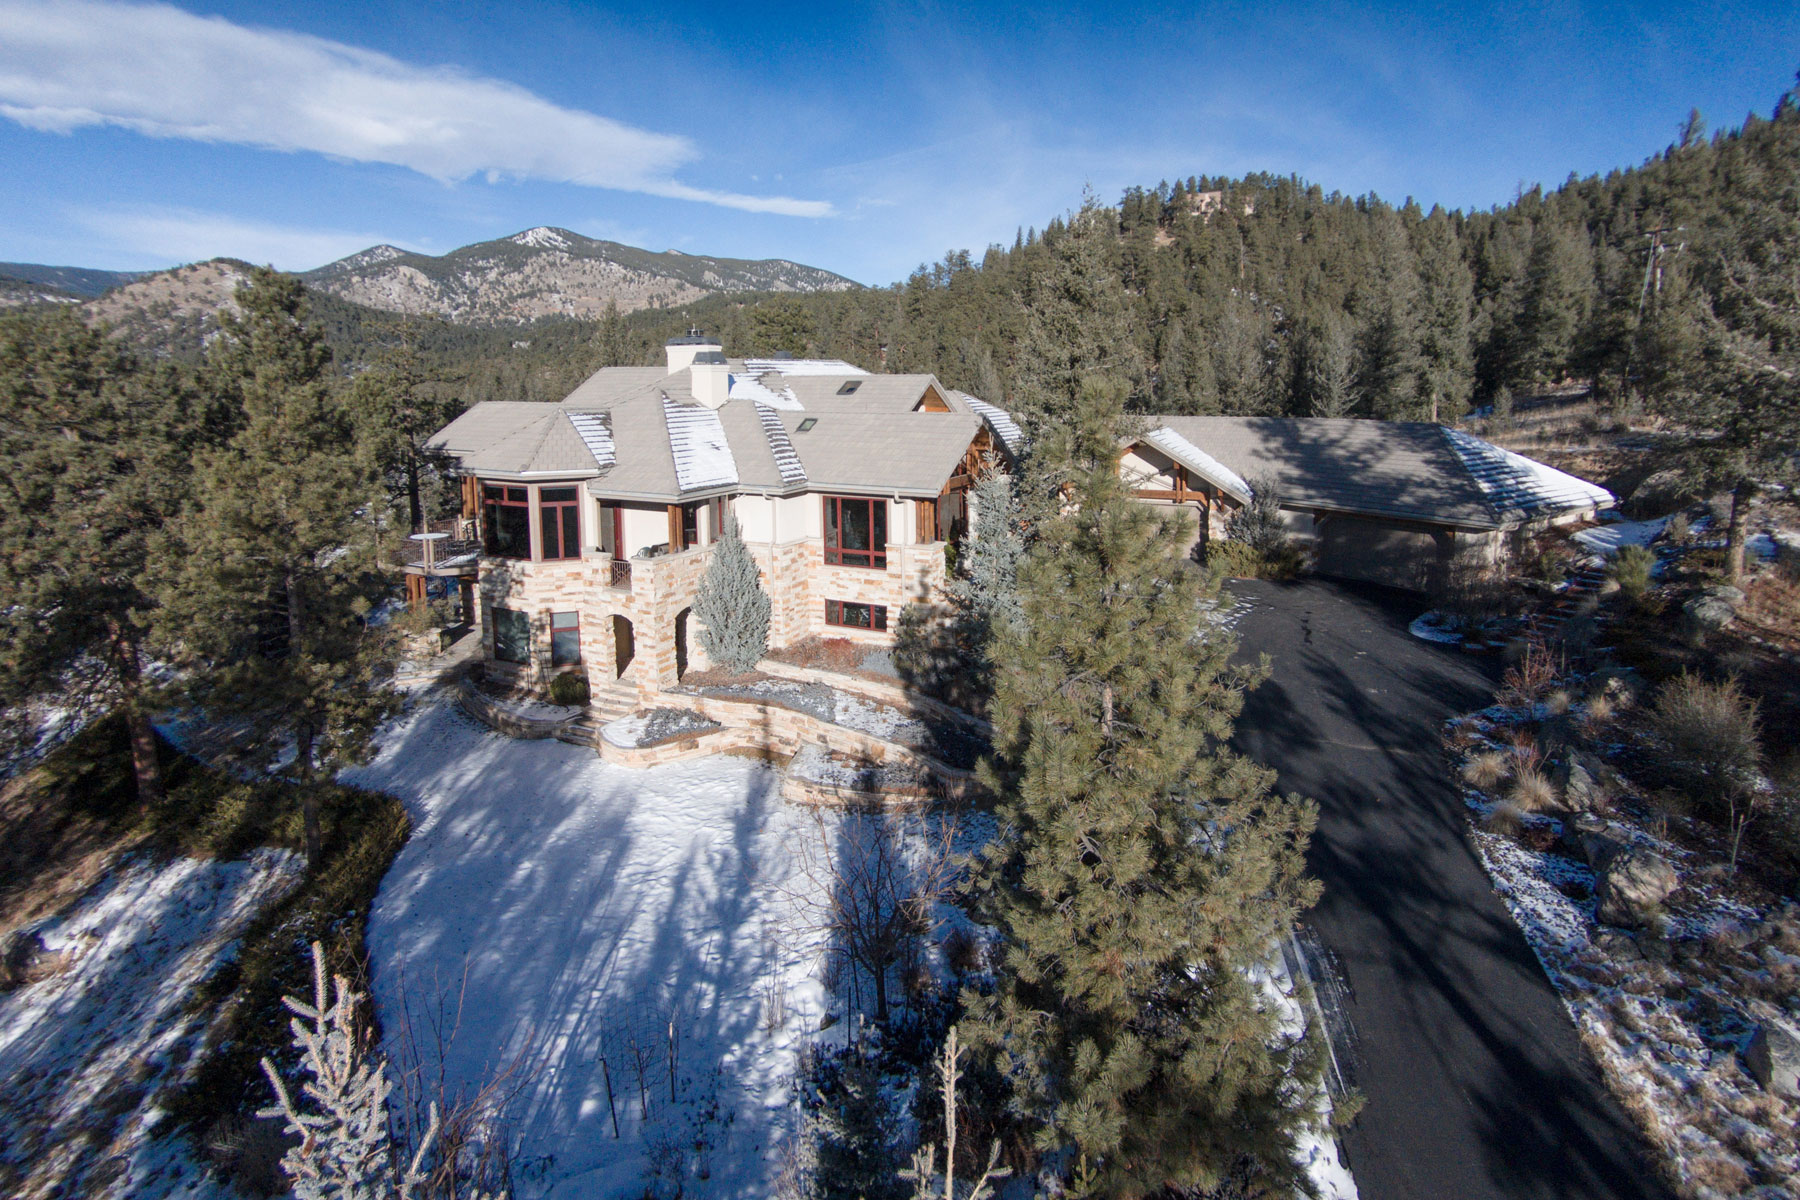 Maison unifamiliale pour l Vente à The Wildflower Wonder 4128 Wildflower Court Evergreen, Colorado 80439 États-Unis